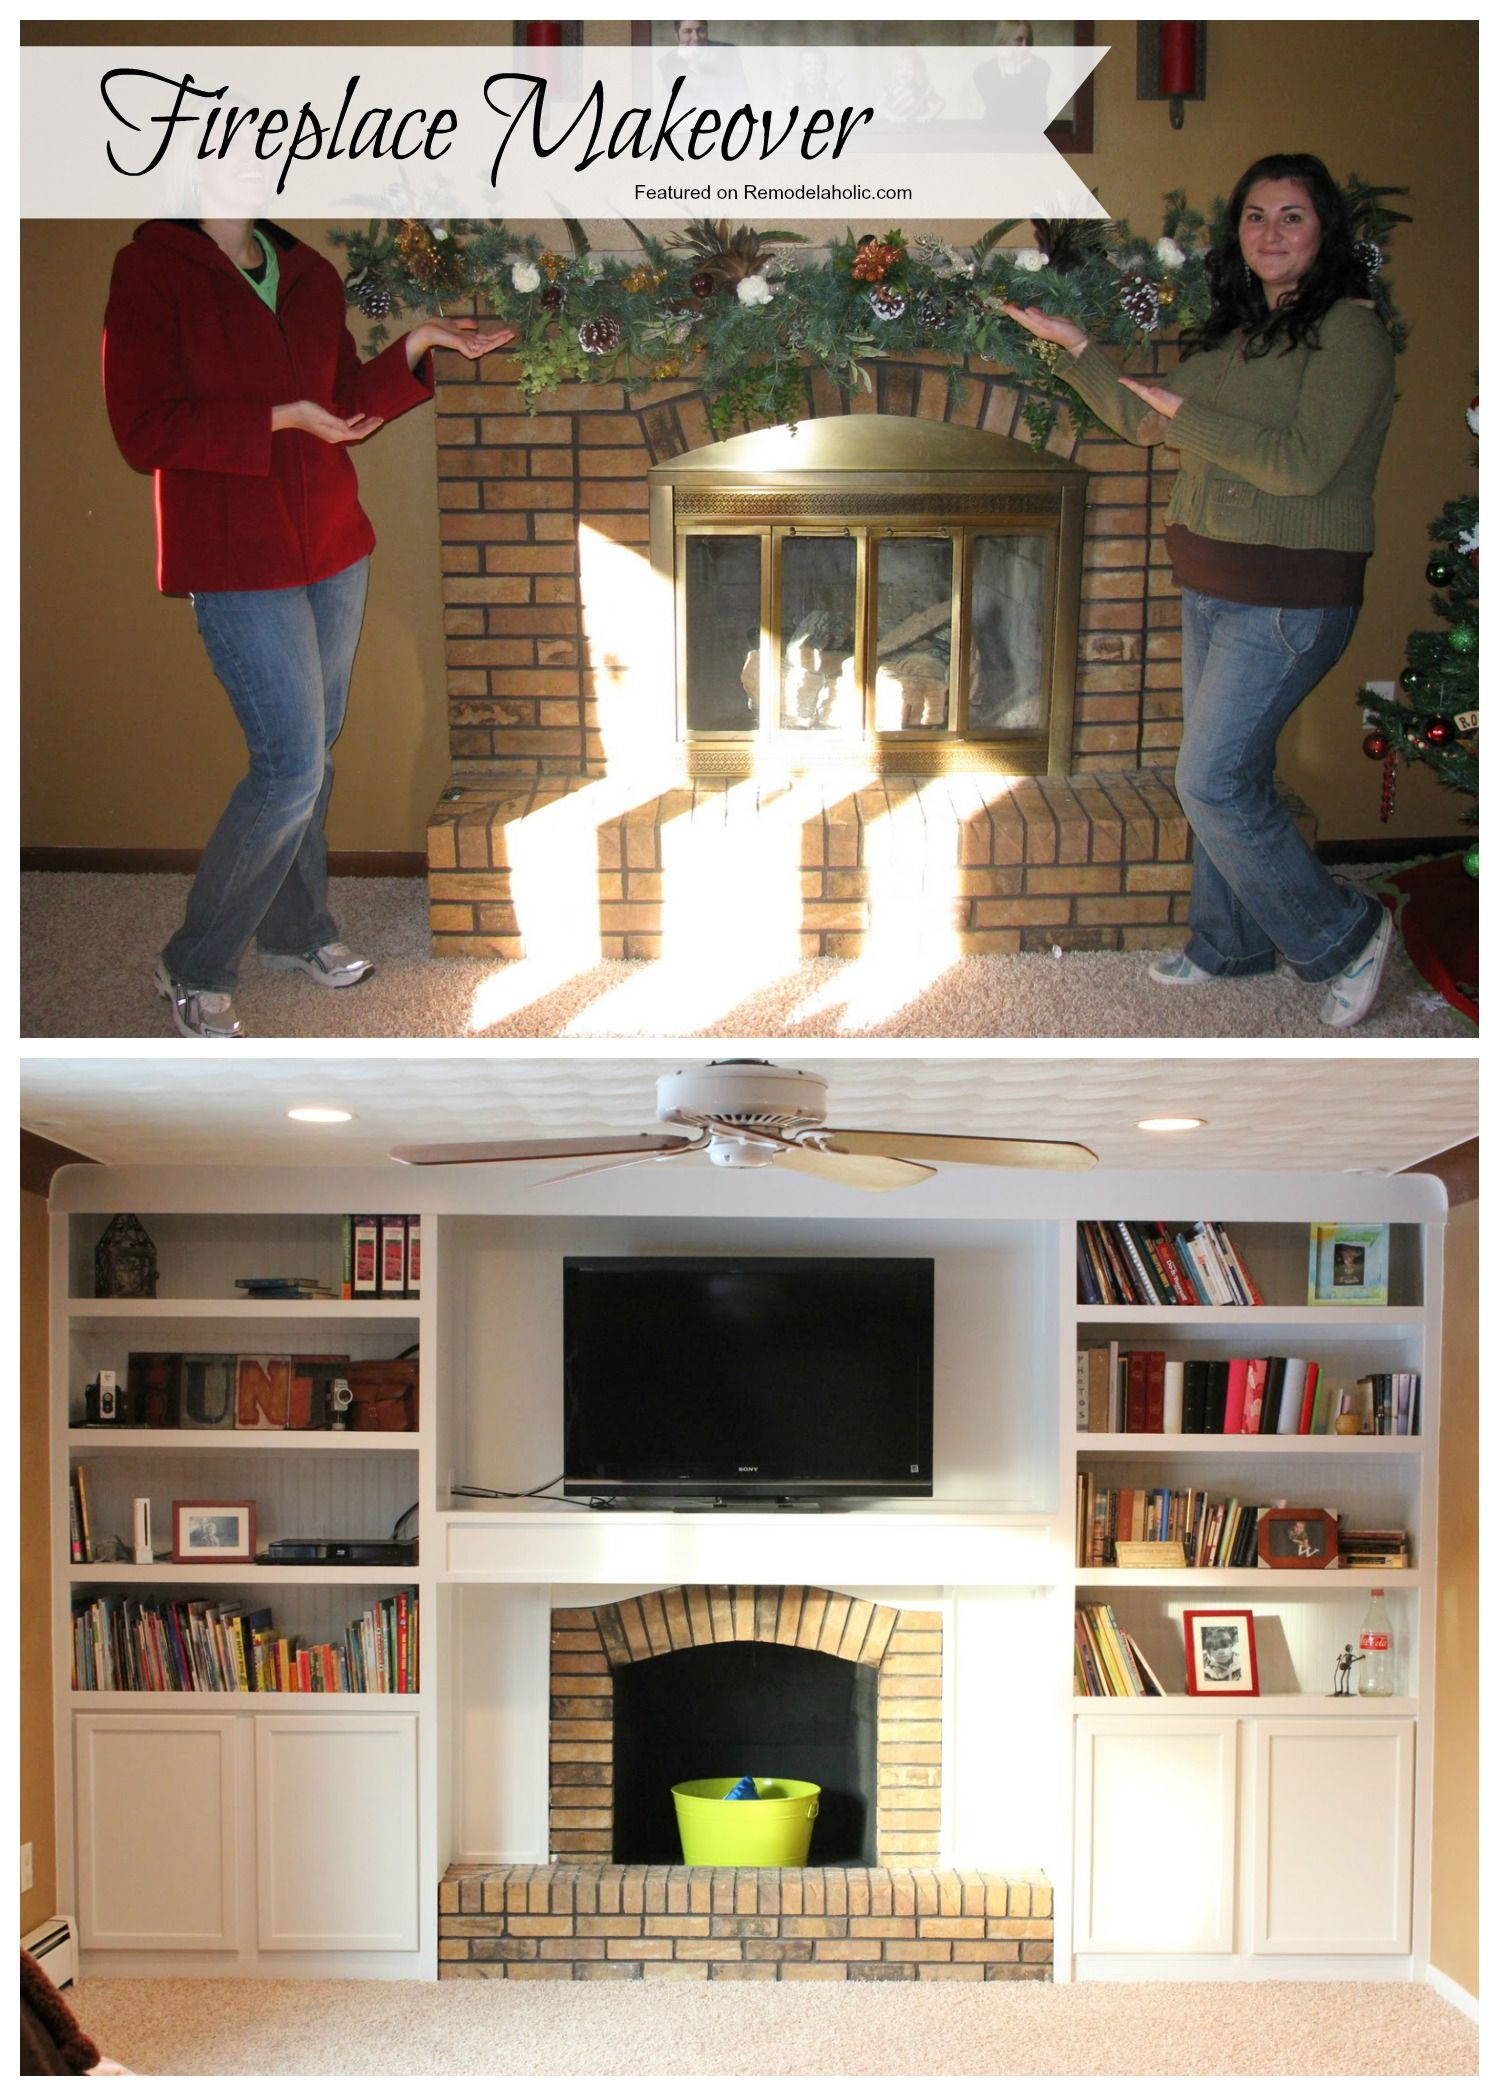 Fireplace makeover adding built ins using stock cabinets as the